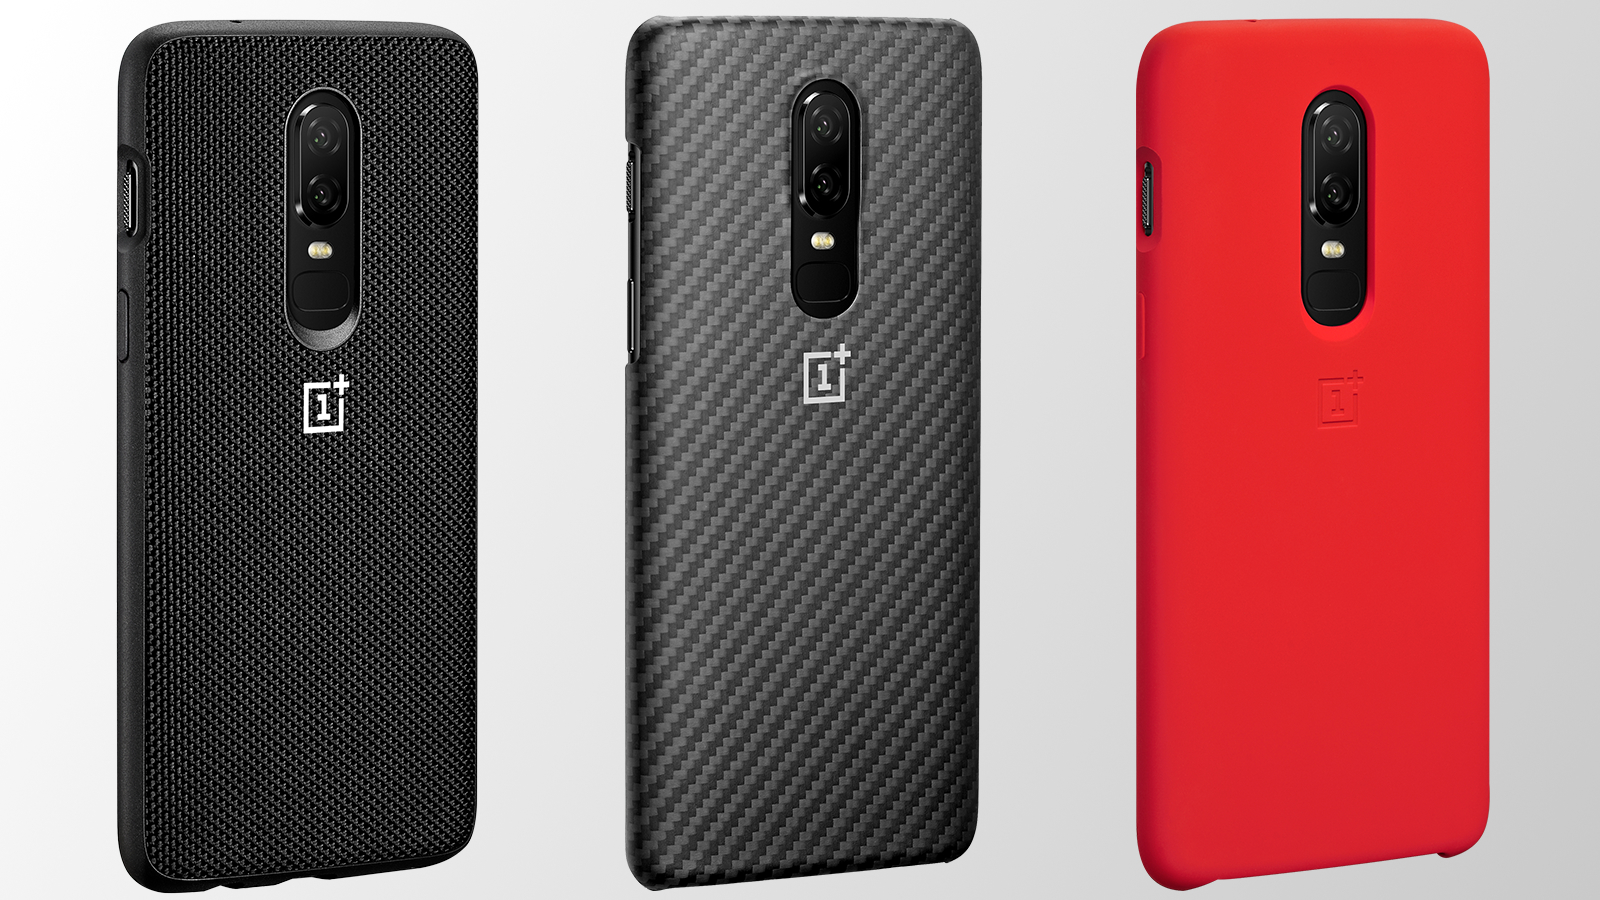 super popular 27158 59ae9 Best OnePlus 6 cases to protect your new phone | TechRadar